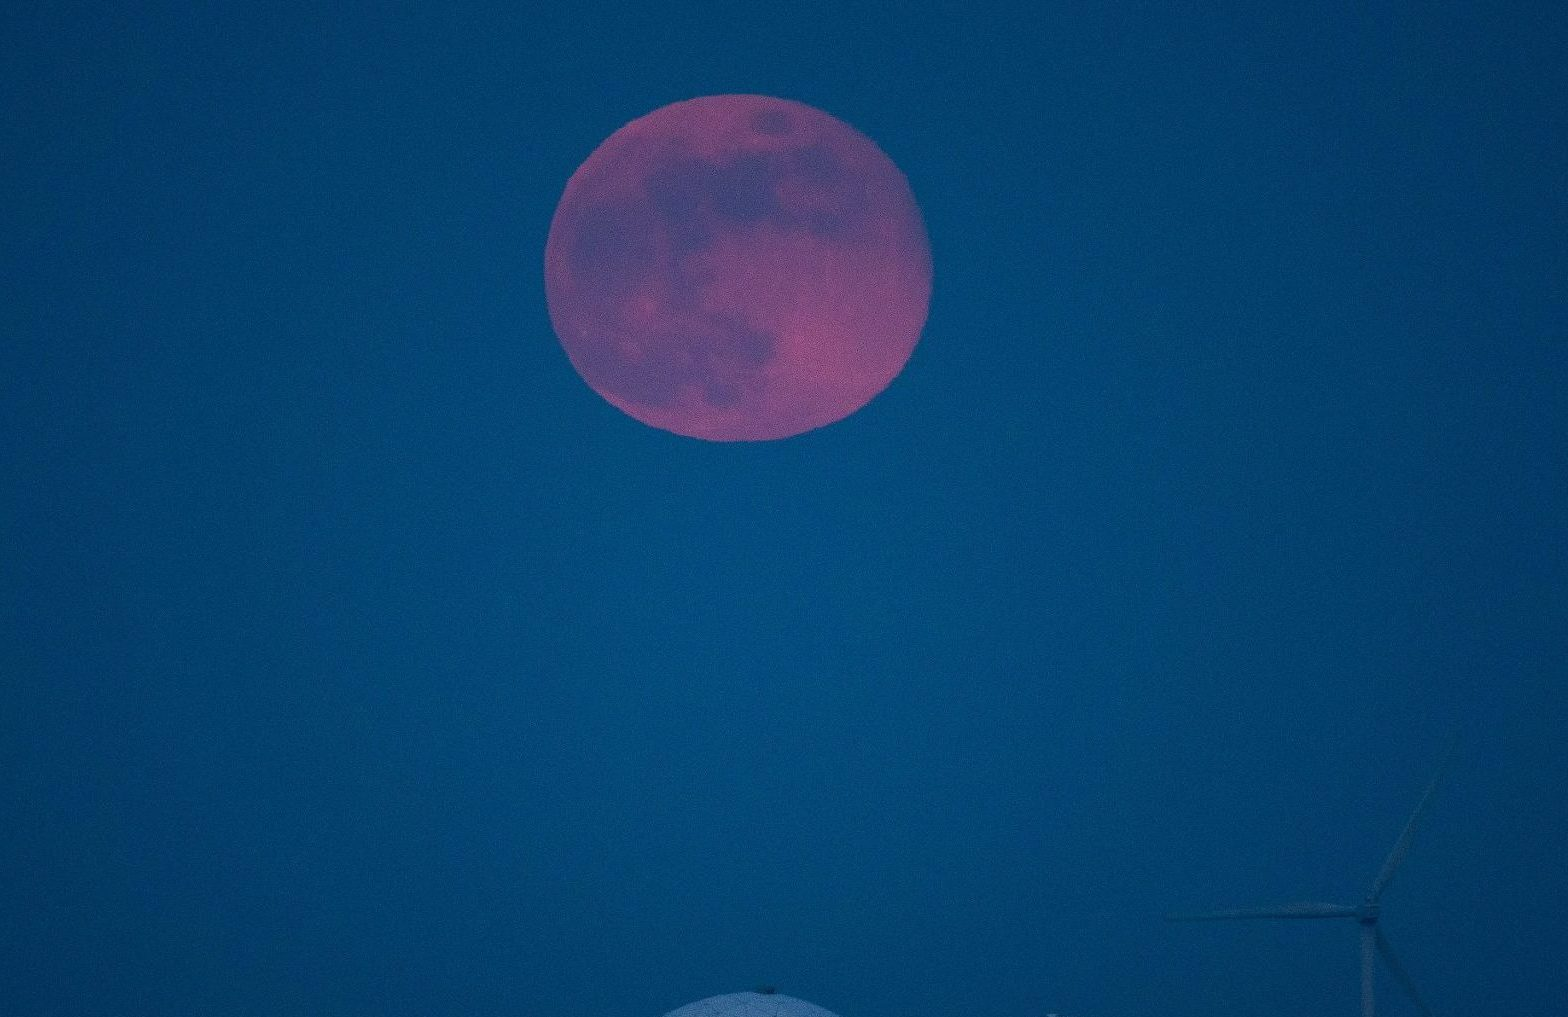 Super Pink Moon (Credit: Cover Images)